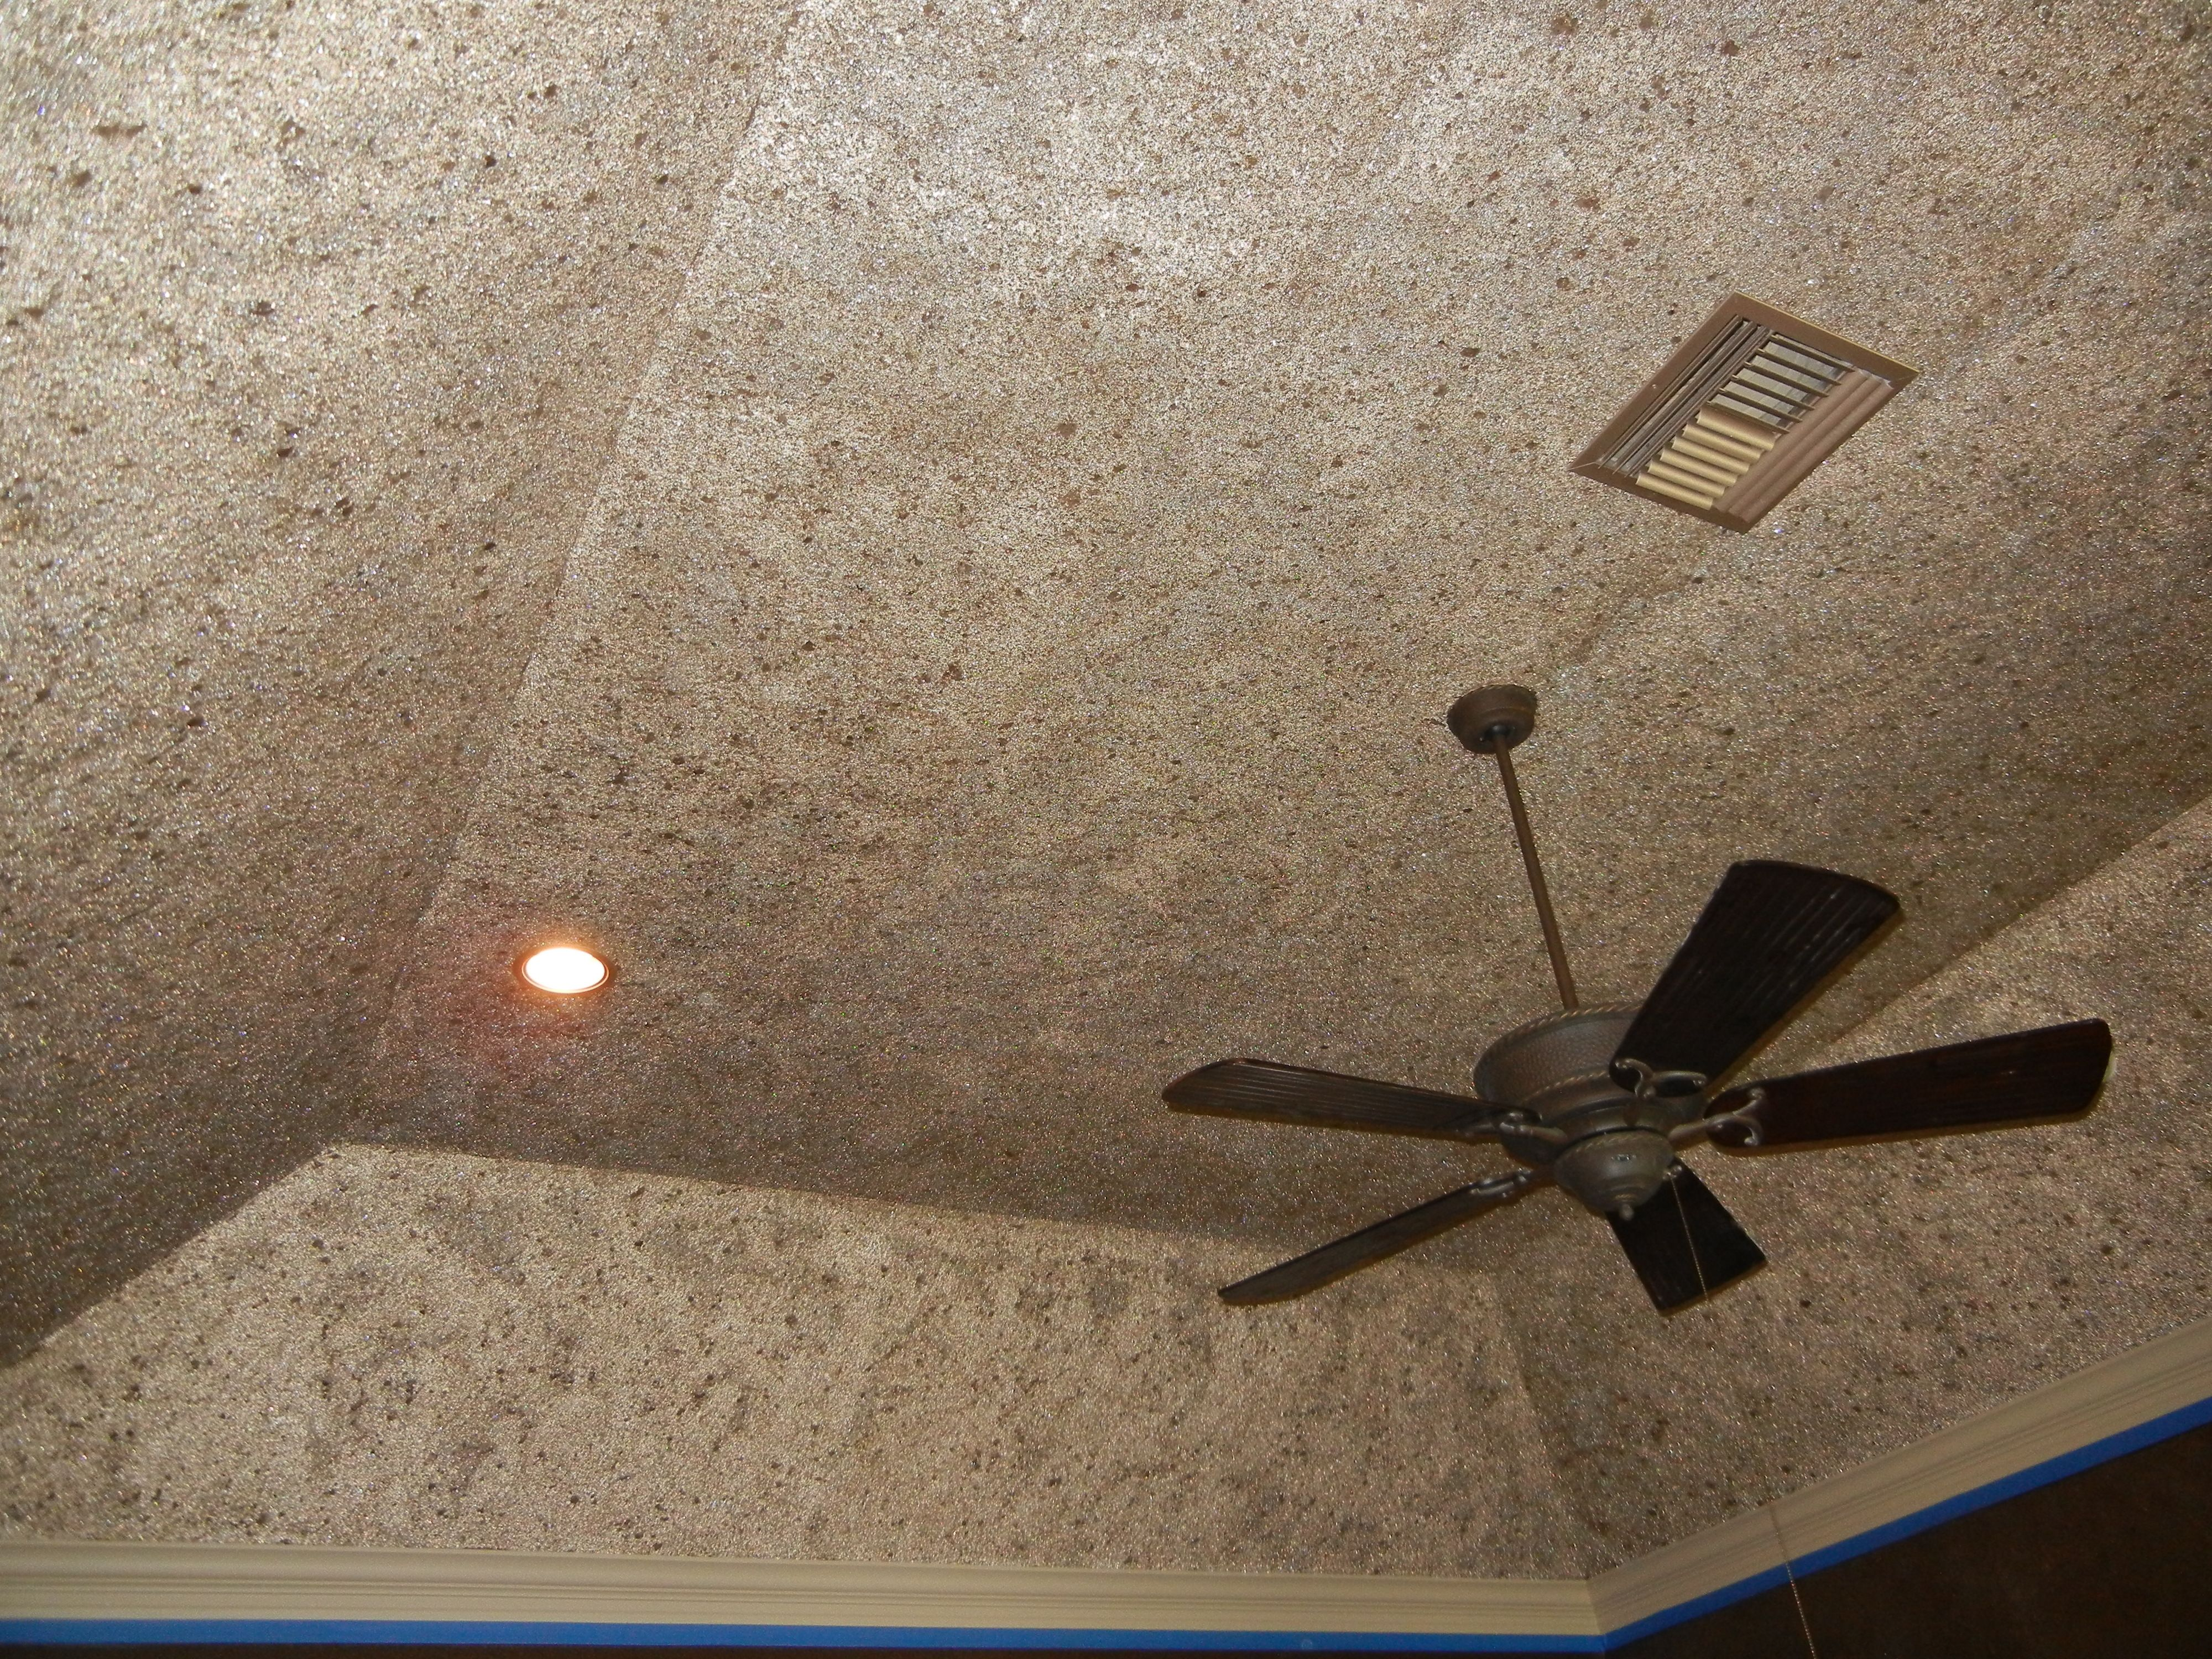 Custom Decorative Glass Bead, Glitter And Mica Flake Finish On Ceiling By  Karla Boddie Of